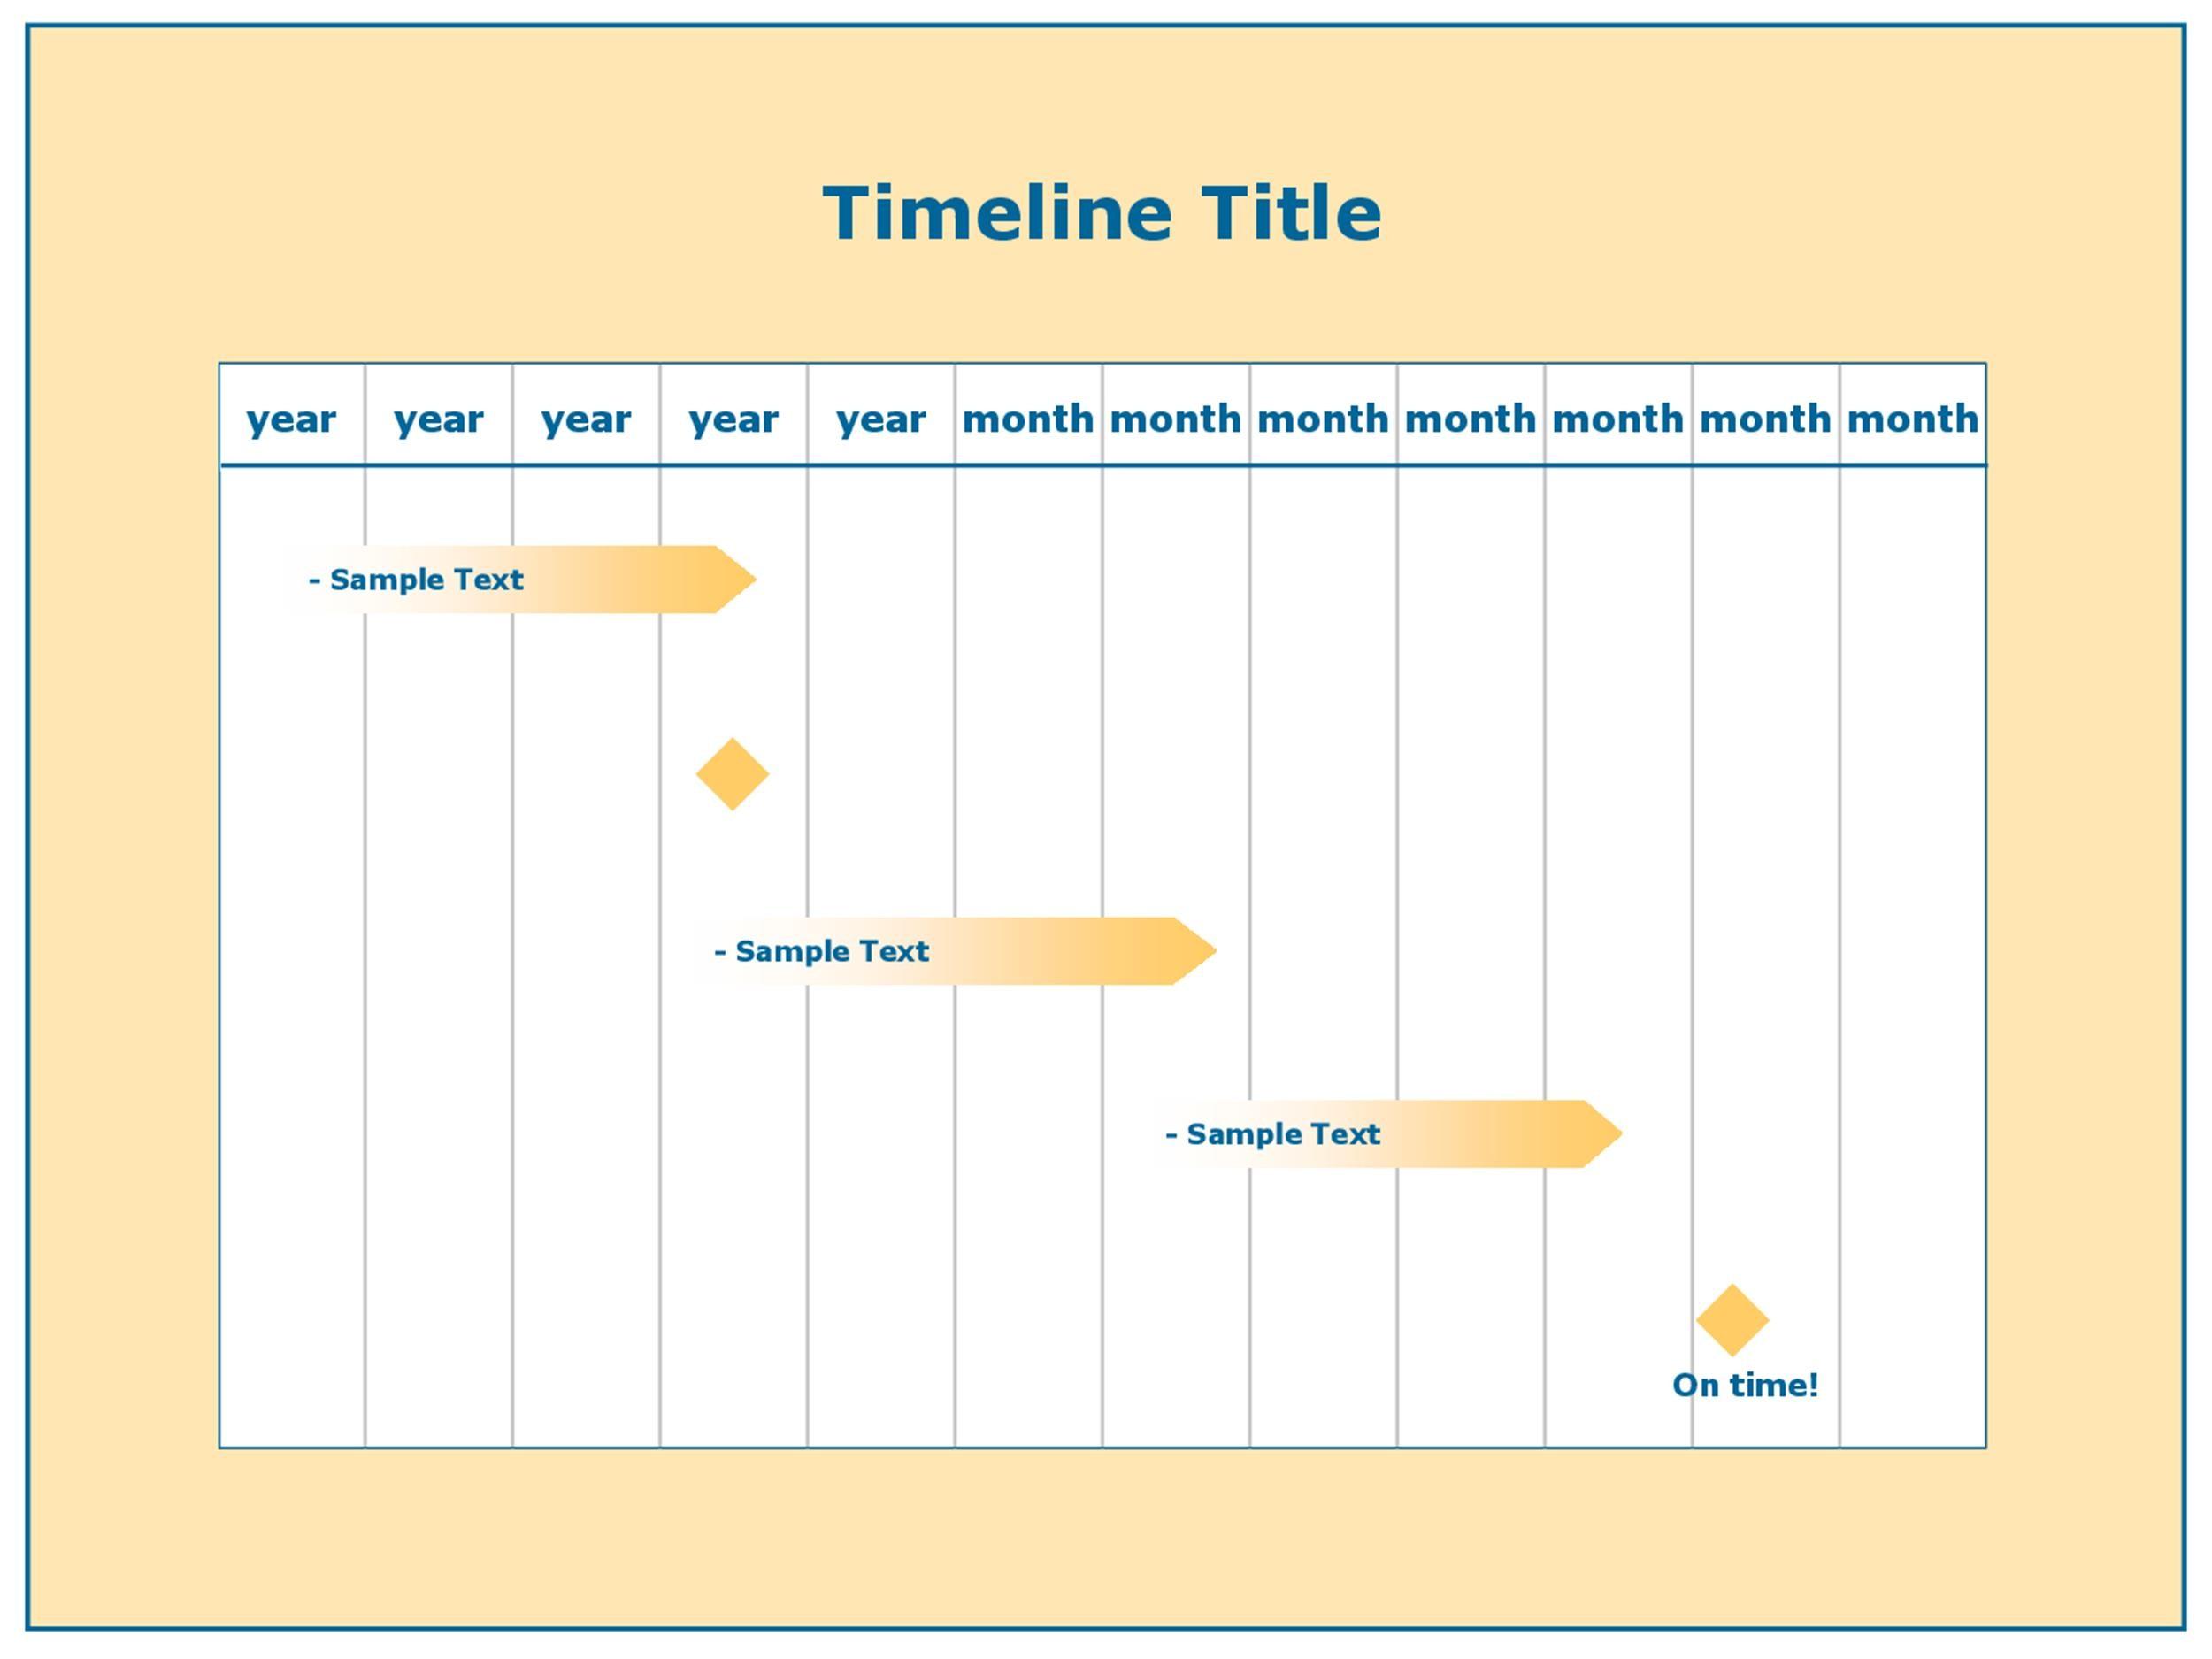 excel timeline template free - download project timeline template excel gantt chart